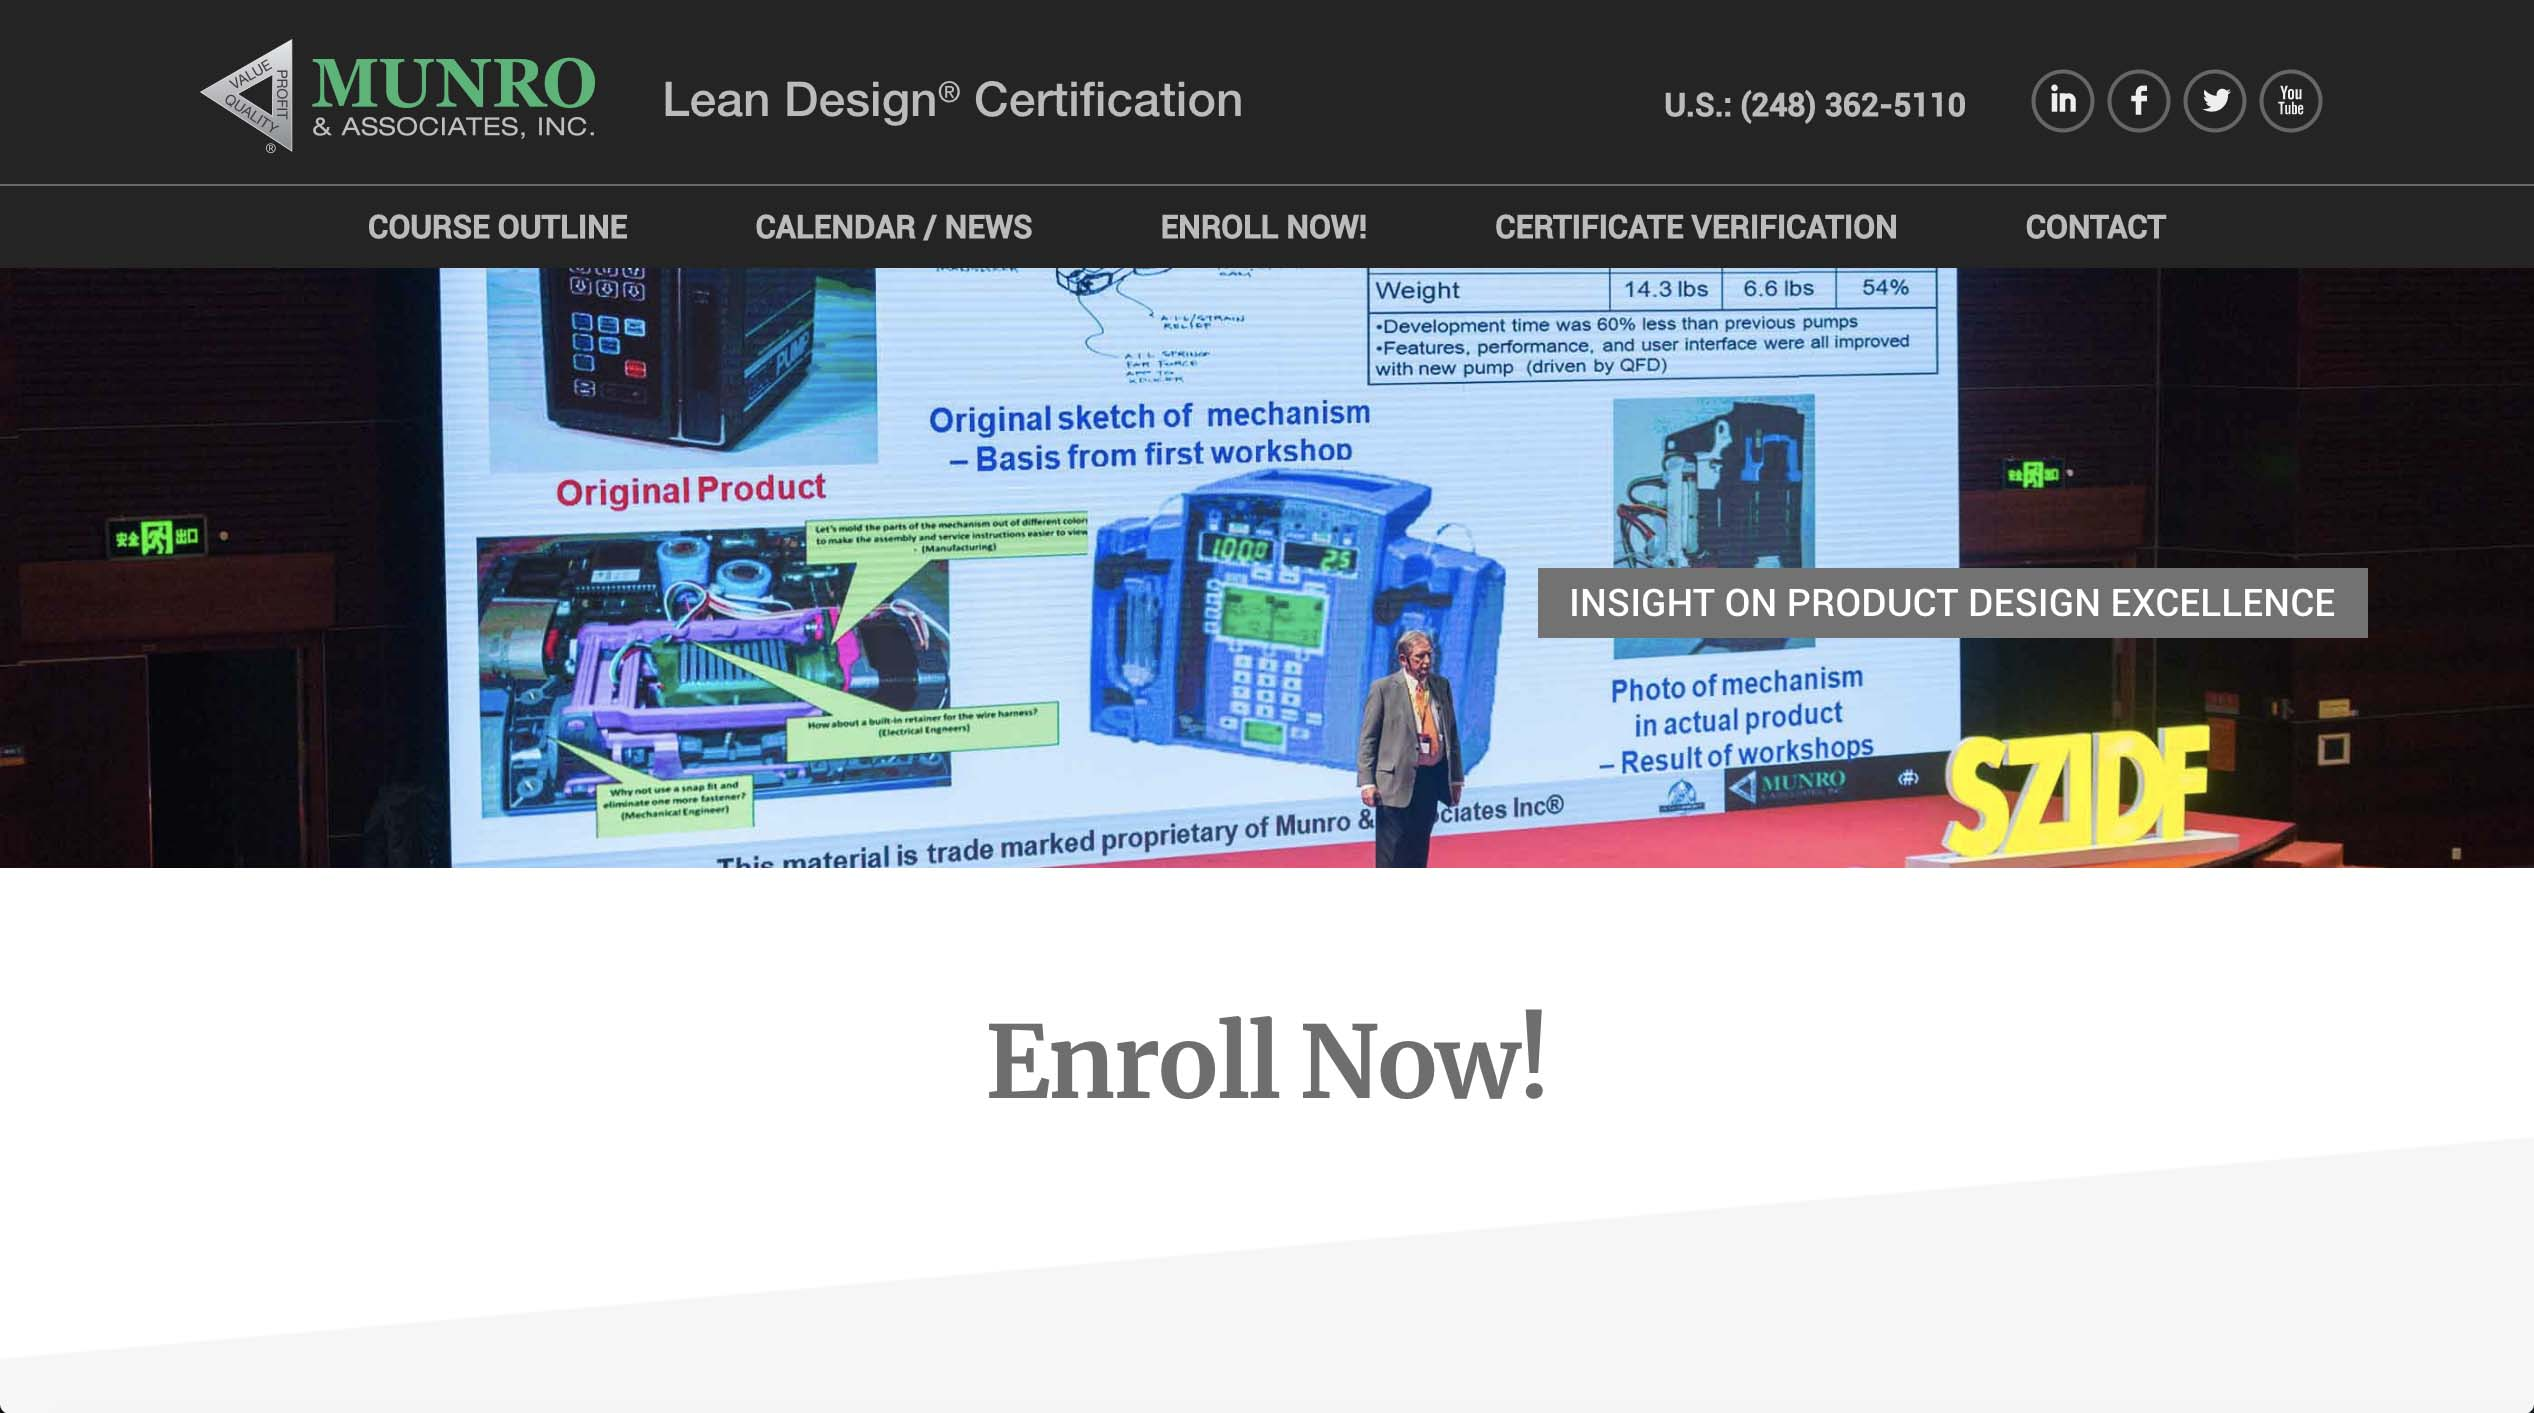 Lean Design Certification site